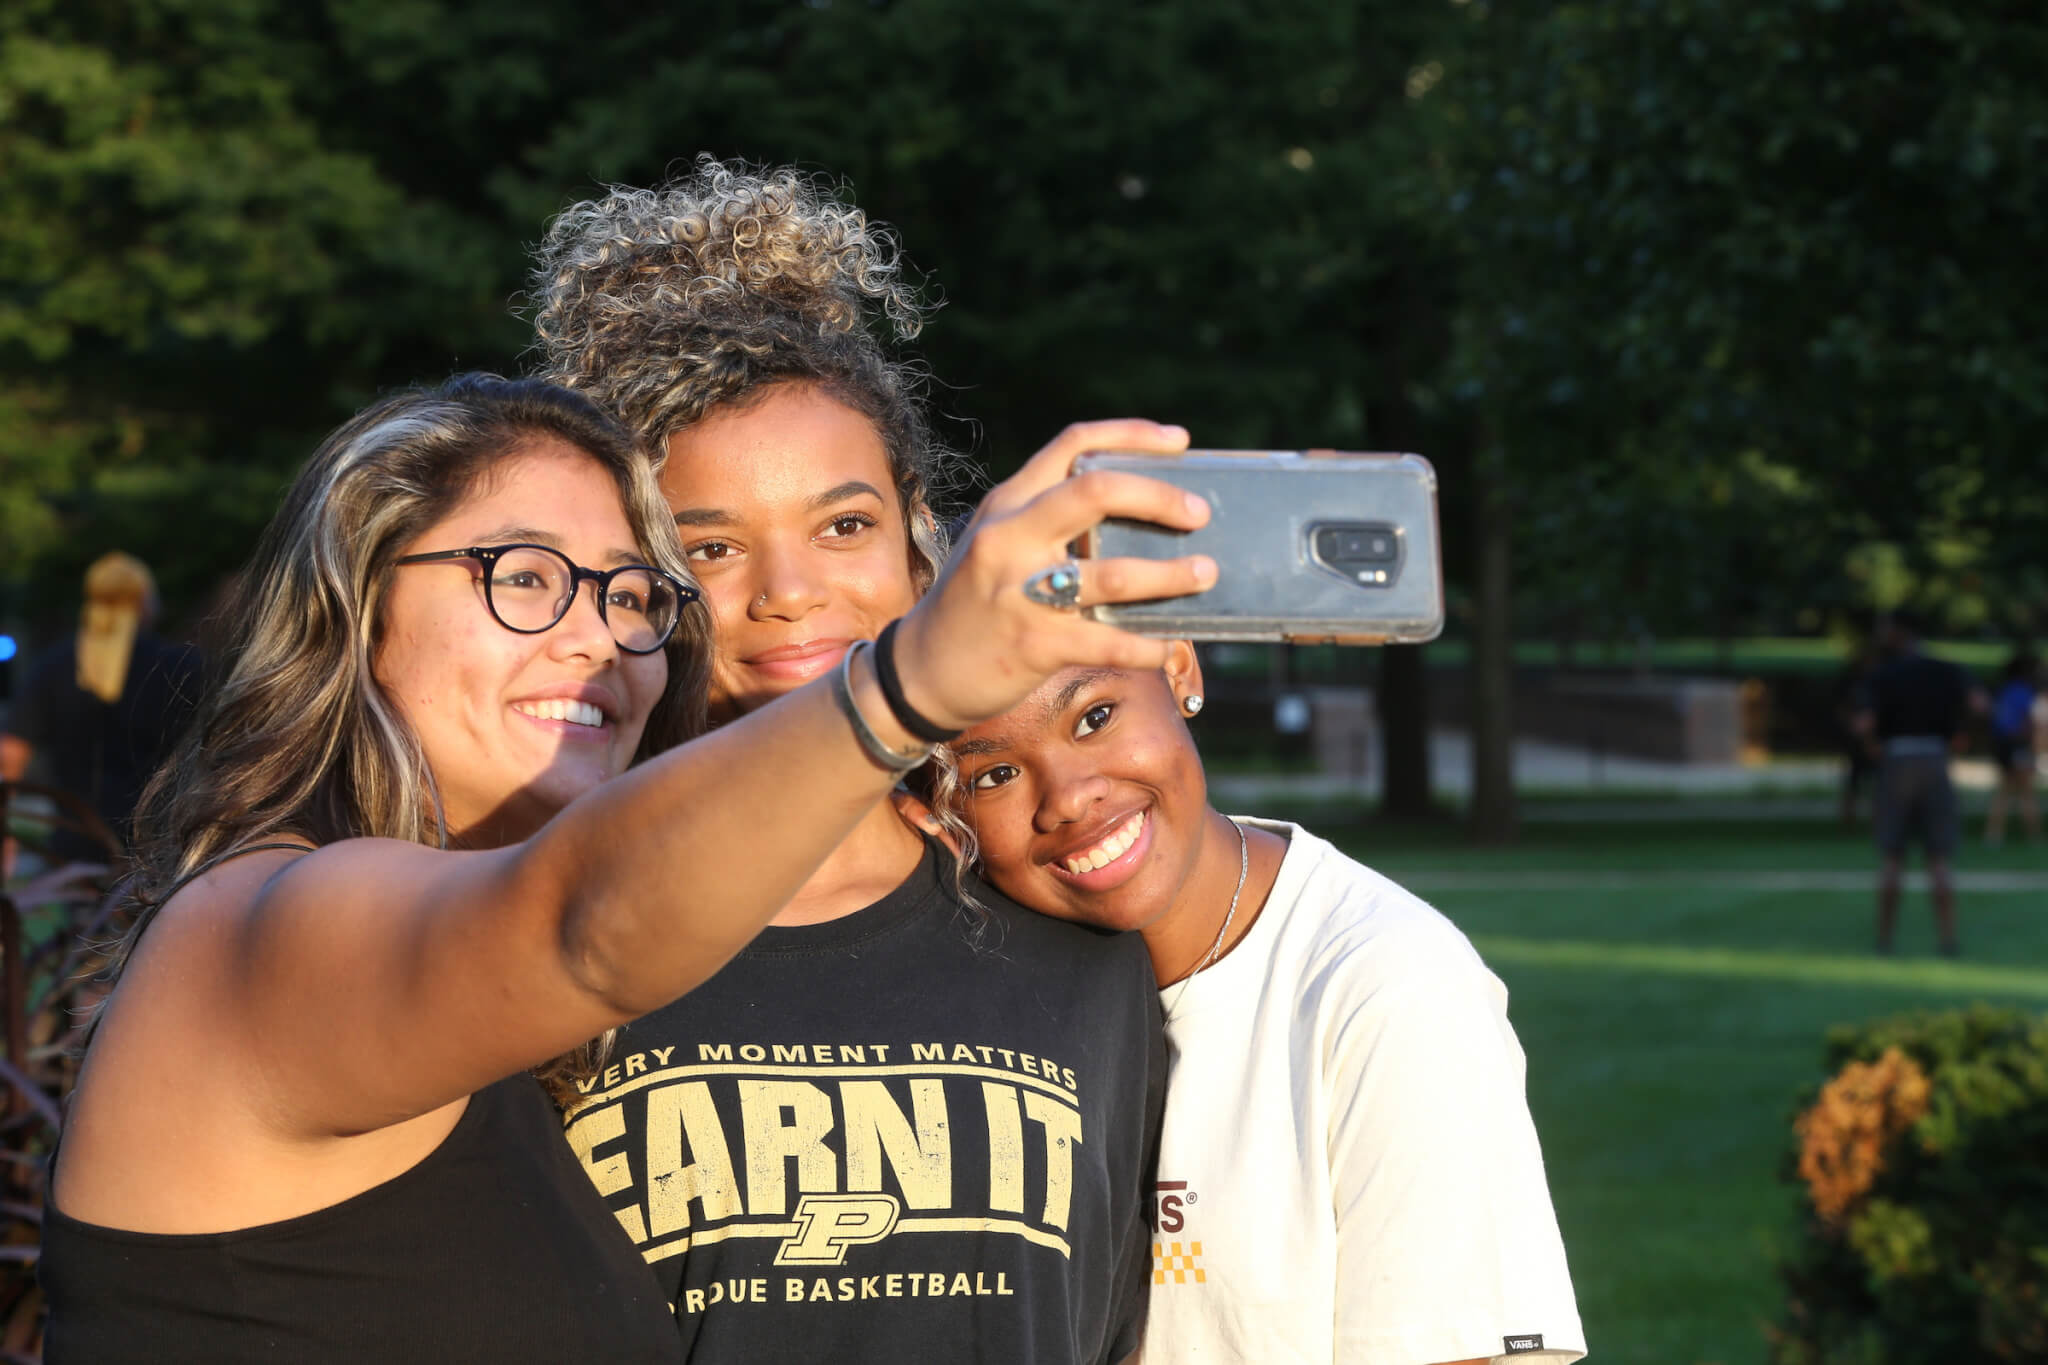 Nira with other students taking a selfie